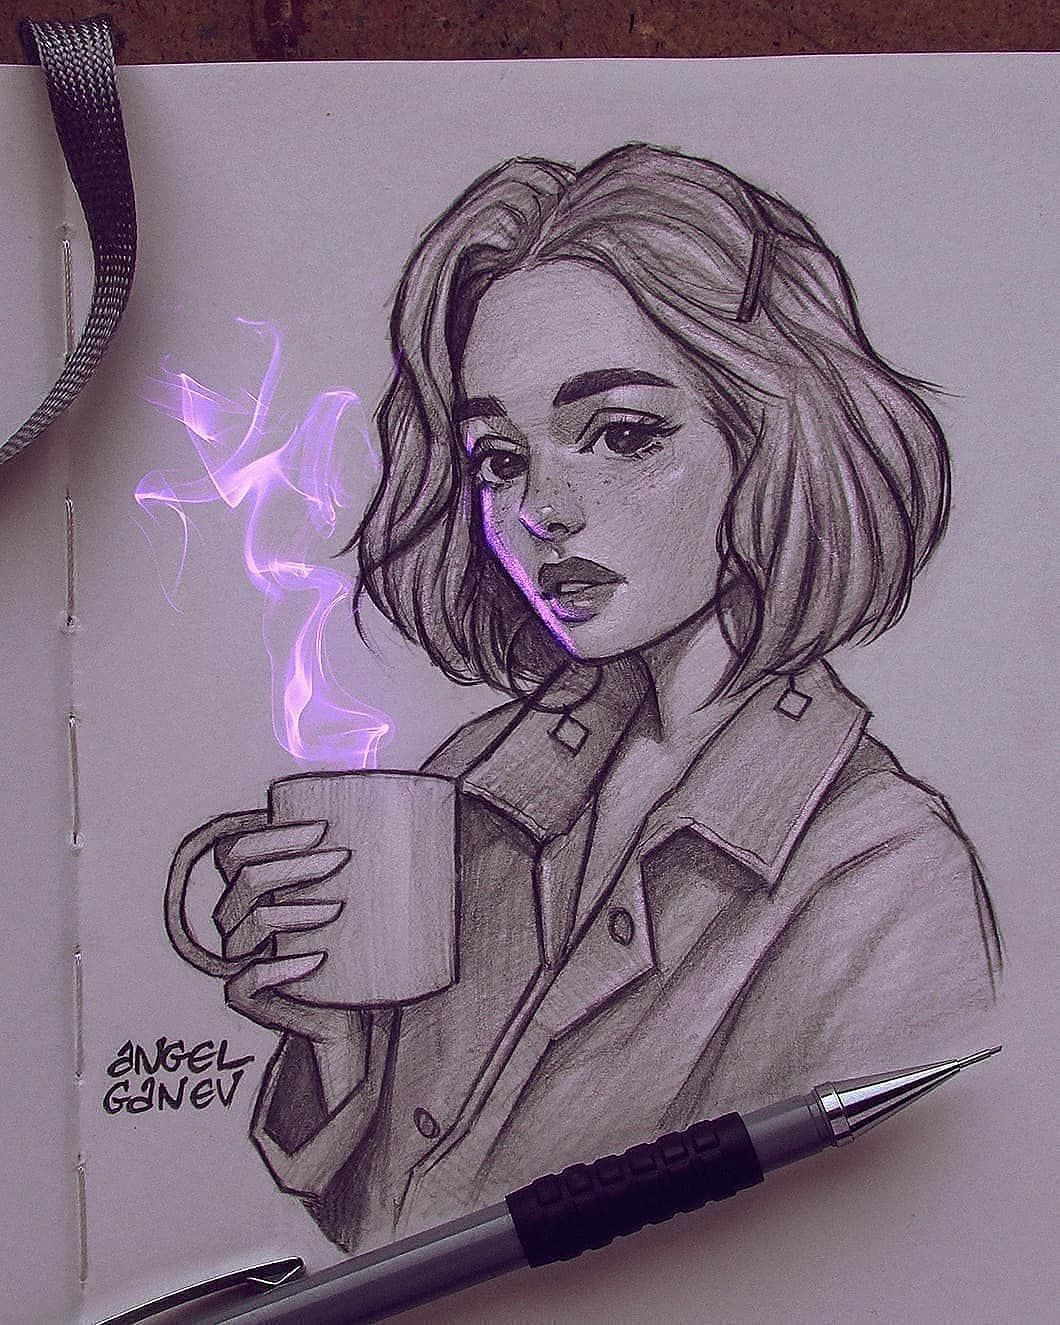 Incredible Sketches With Glowing Effect Follow Art Dailydose For More Art And Use Our Hashta Art Sketches Art Drawings Sketches Art Drawings Sketches Simple